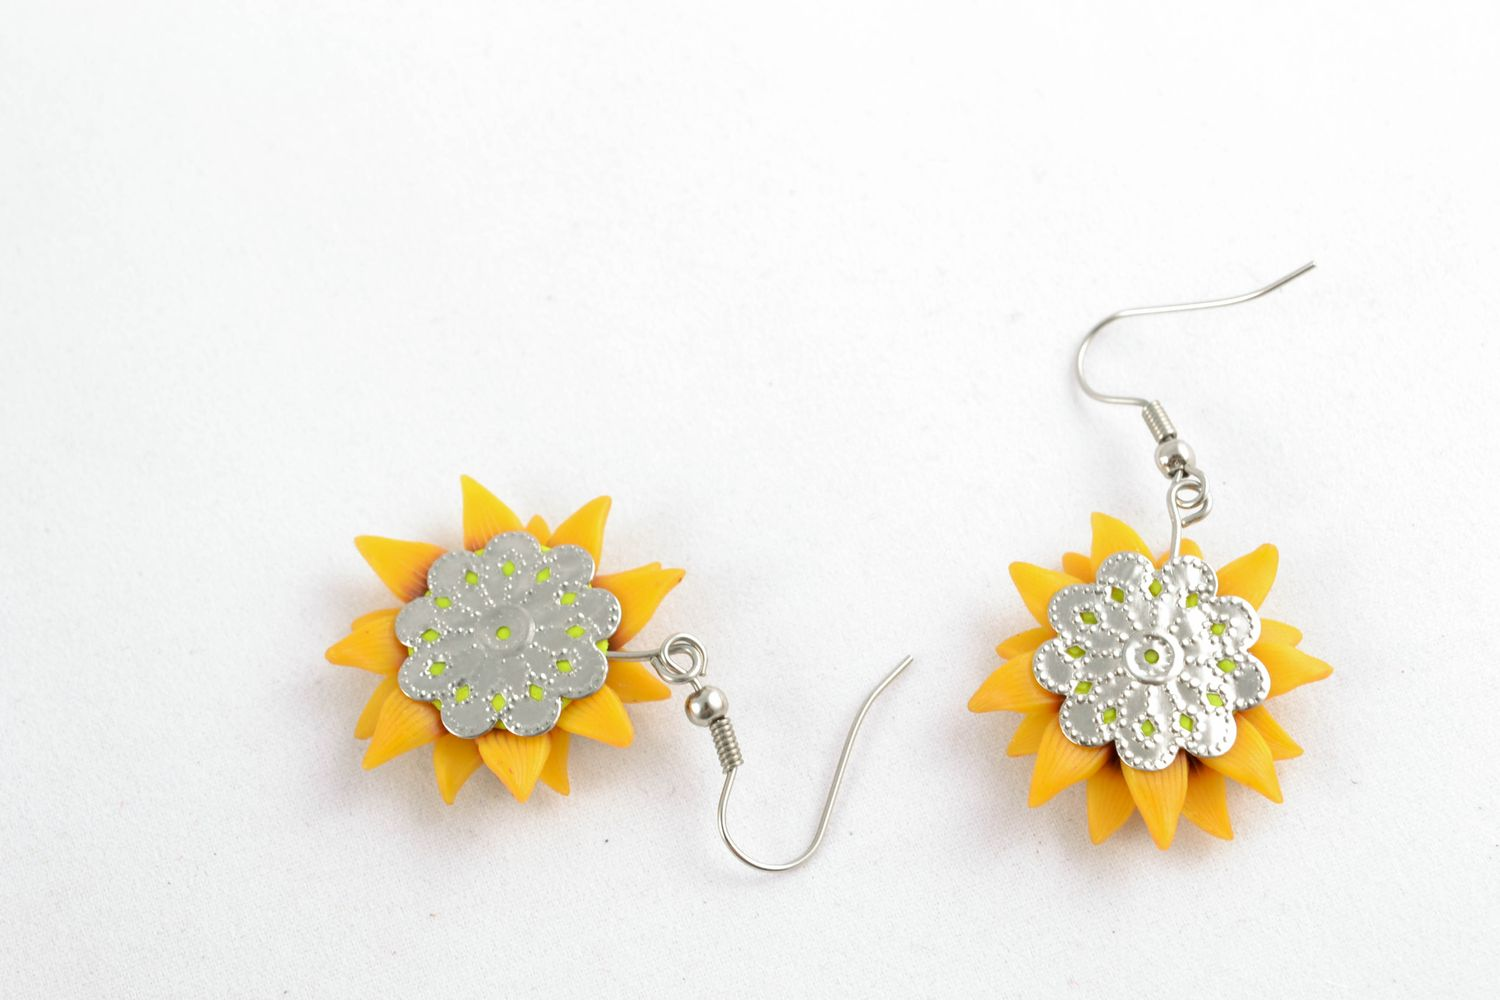 Polymer clay earrings in the shape of sunflowers photo 5